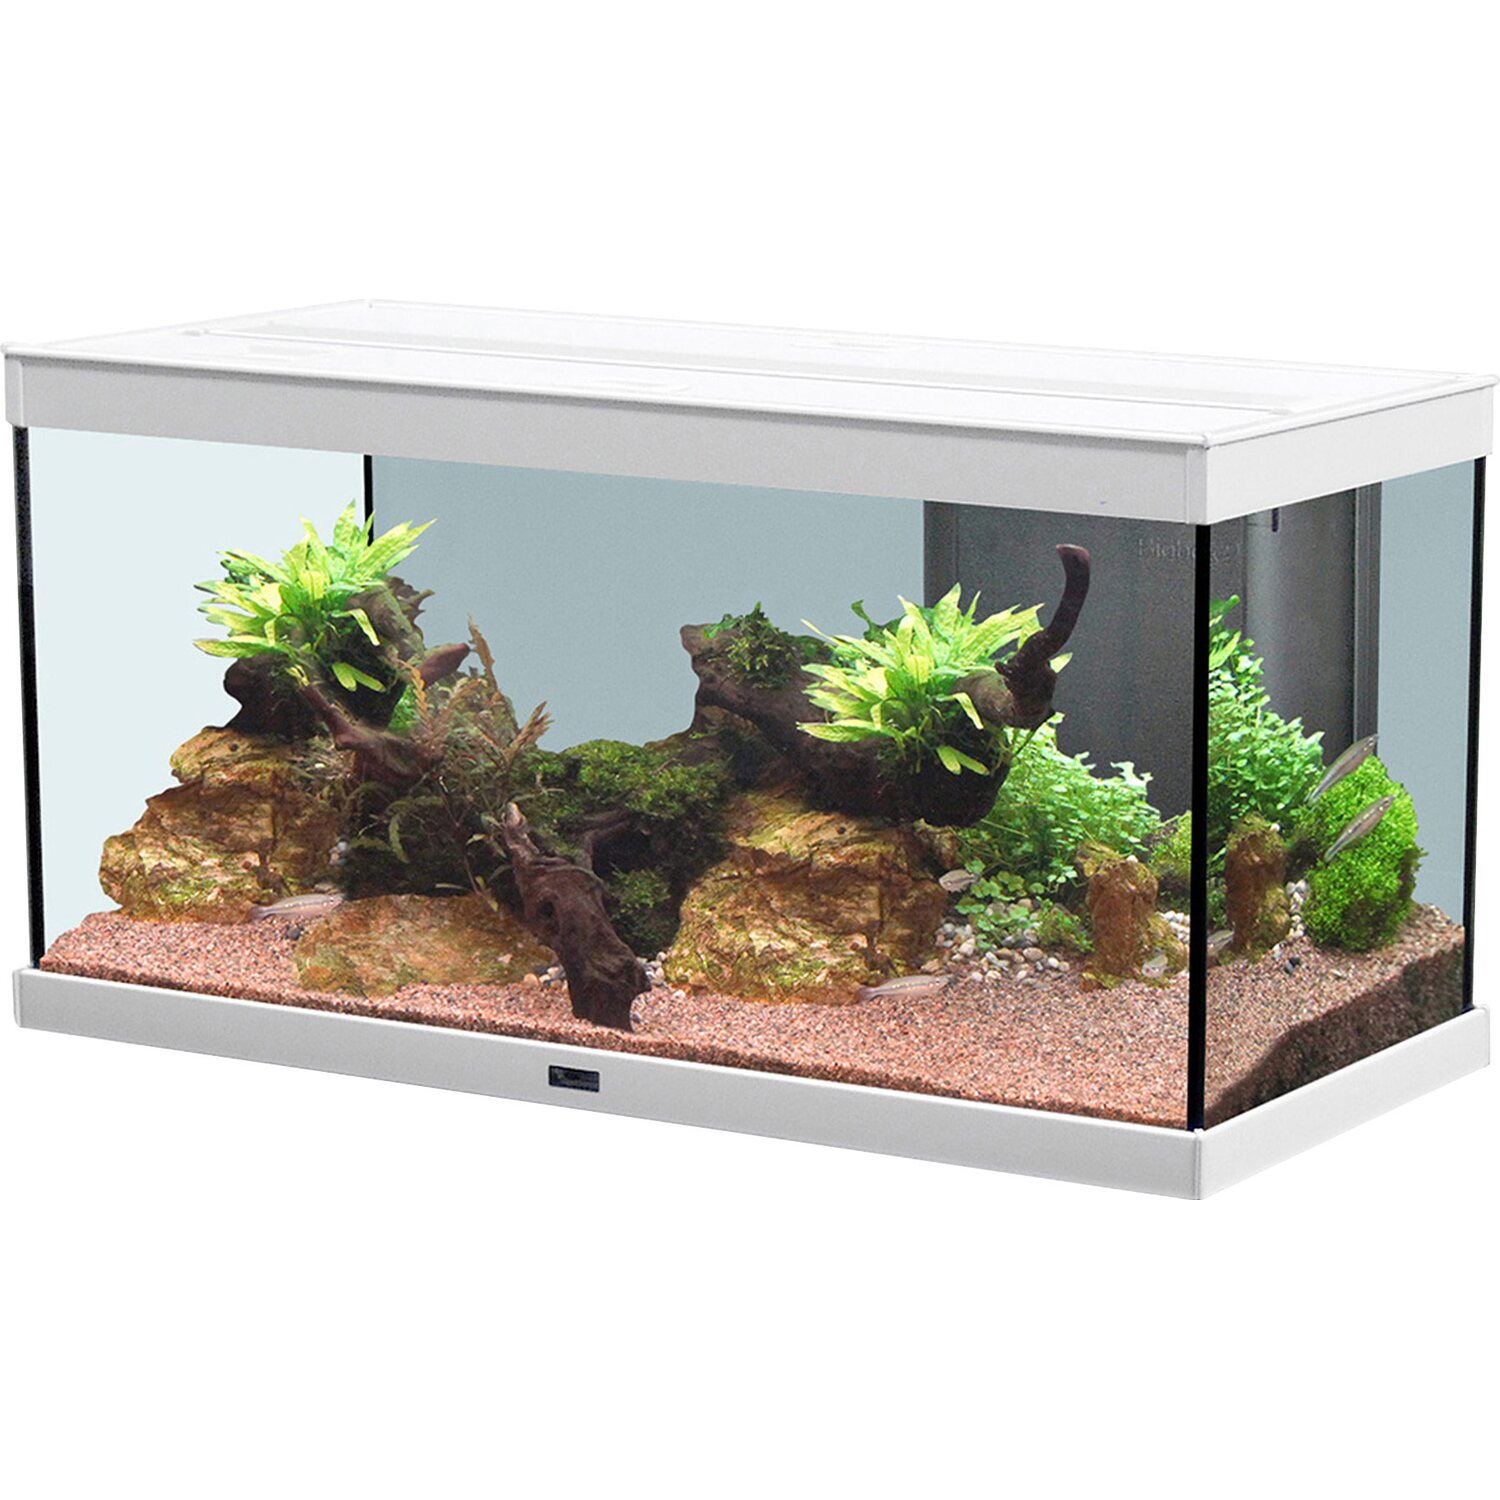 aquatlantis aquarium style led 80 x 35 cm wei 86 l kaufen bei obi. Black Bedroom Furniture Sets. Home Design Ideas